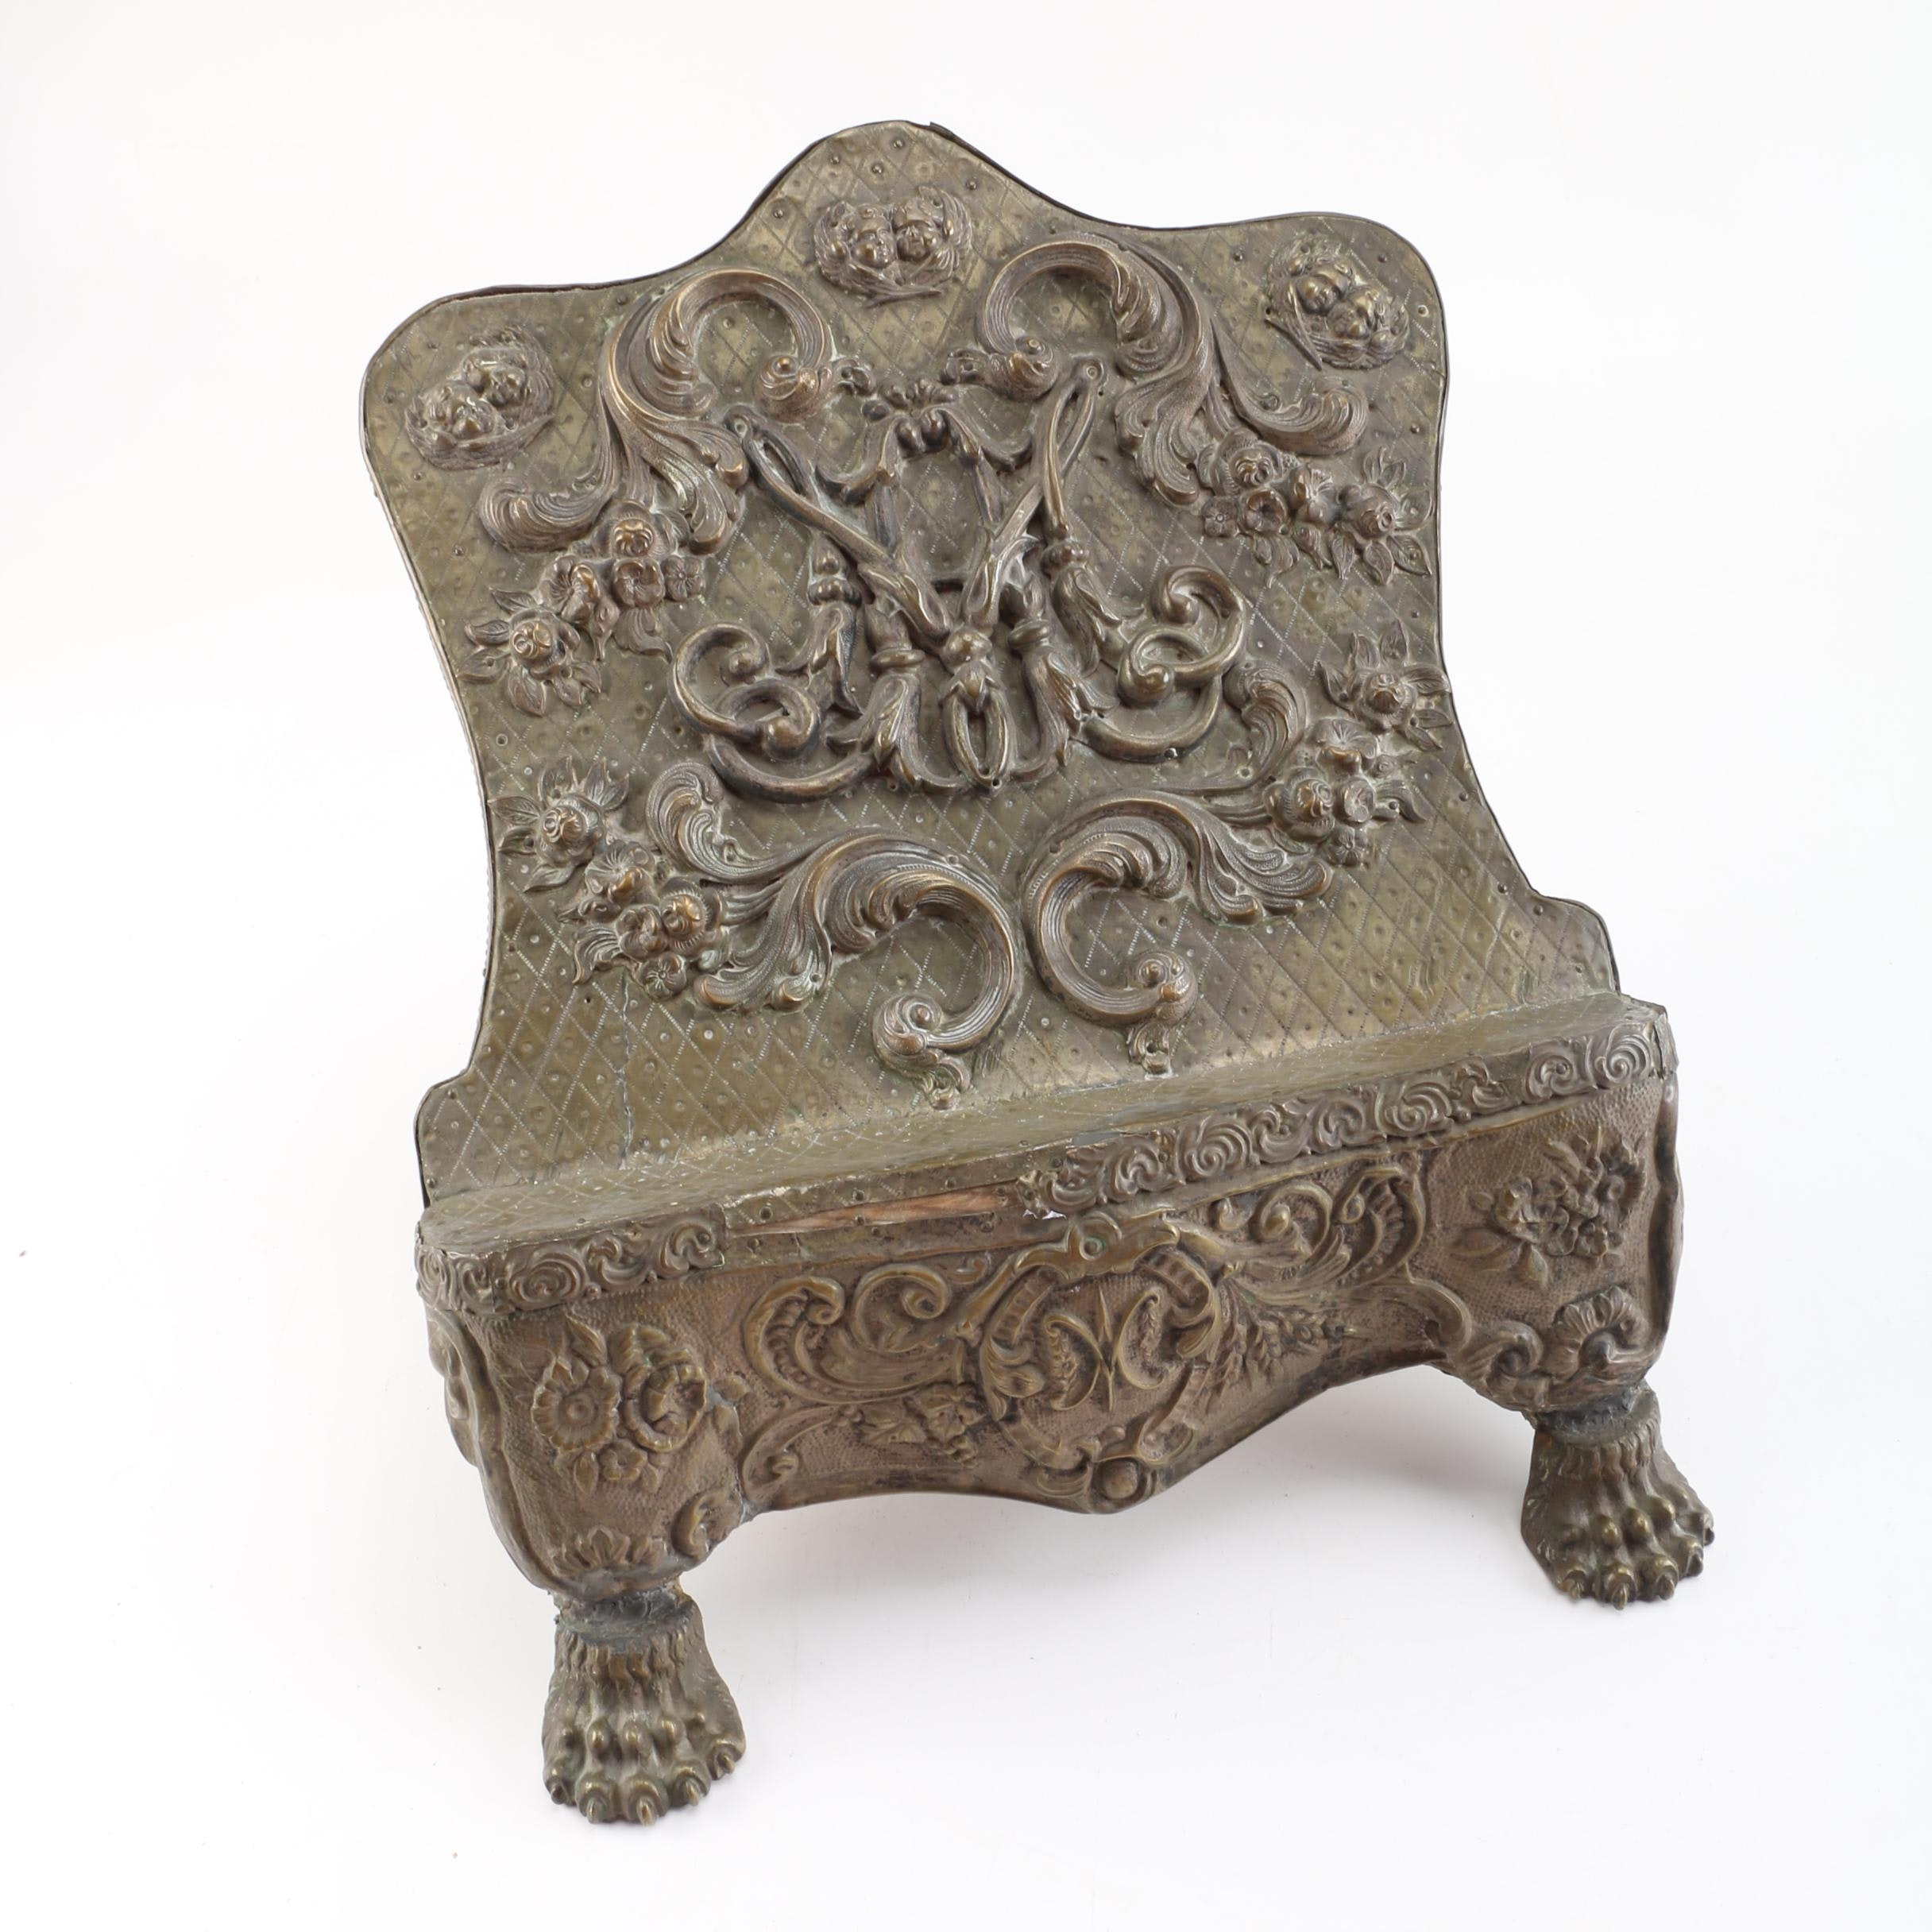 Antique Hammered Copper Relief Lecturn, Circa 18th C.